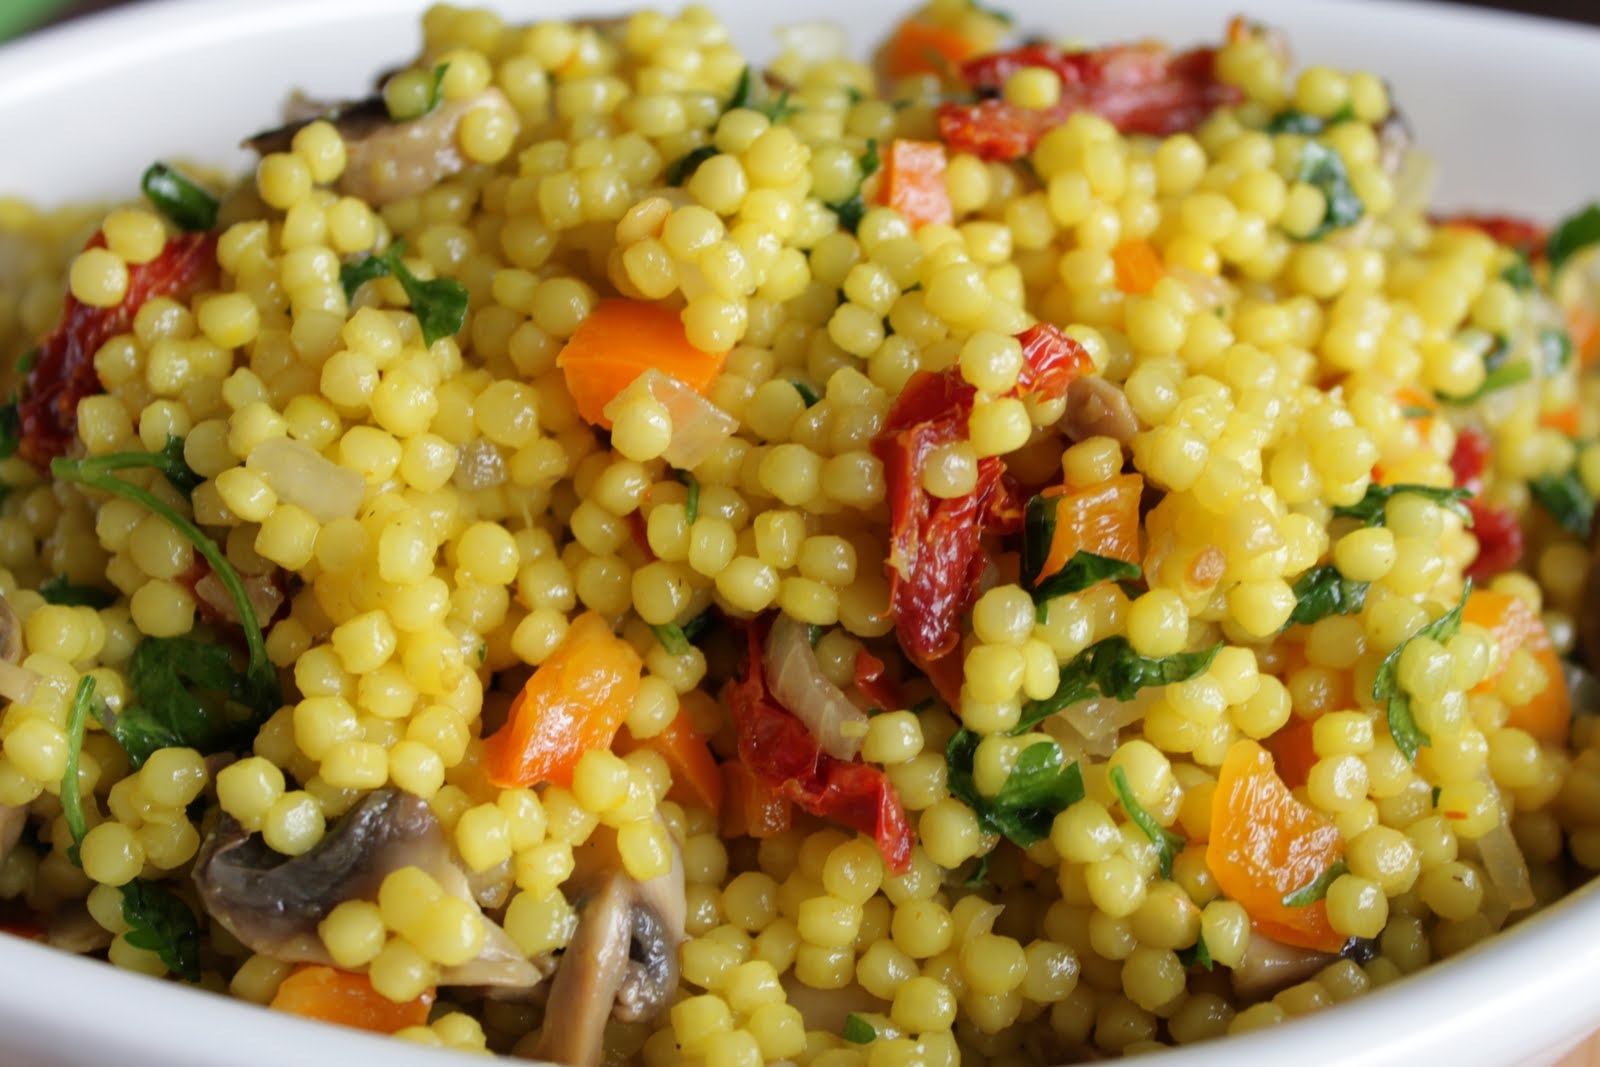 Malisa's Food Blog: Saffron Israeli Couscous Salad